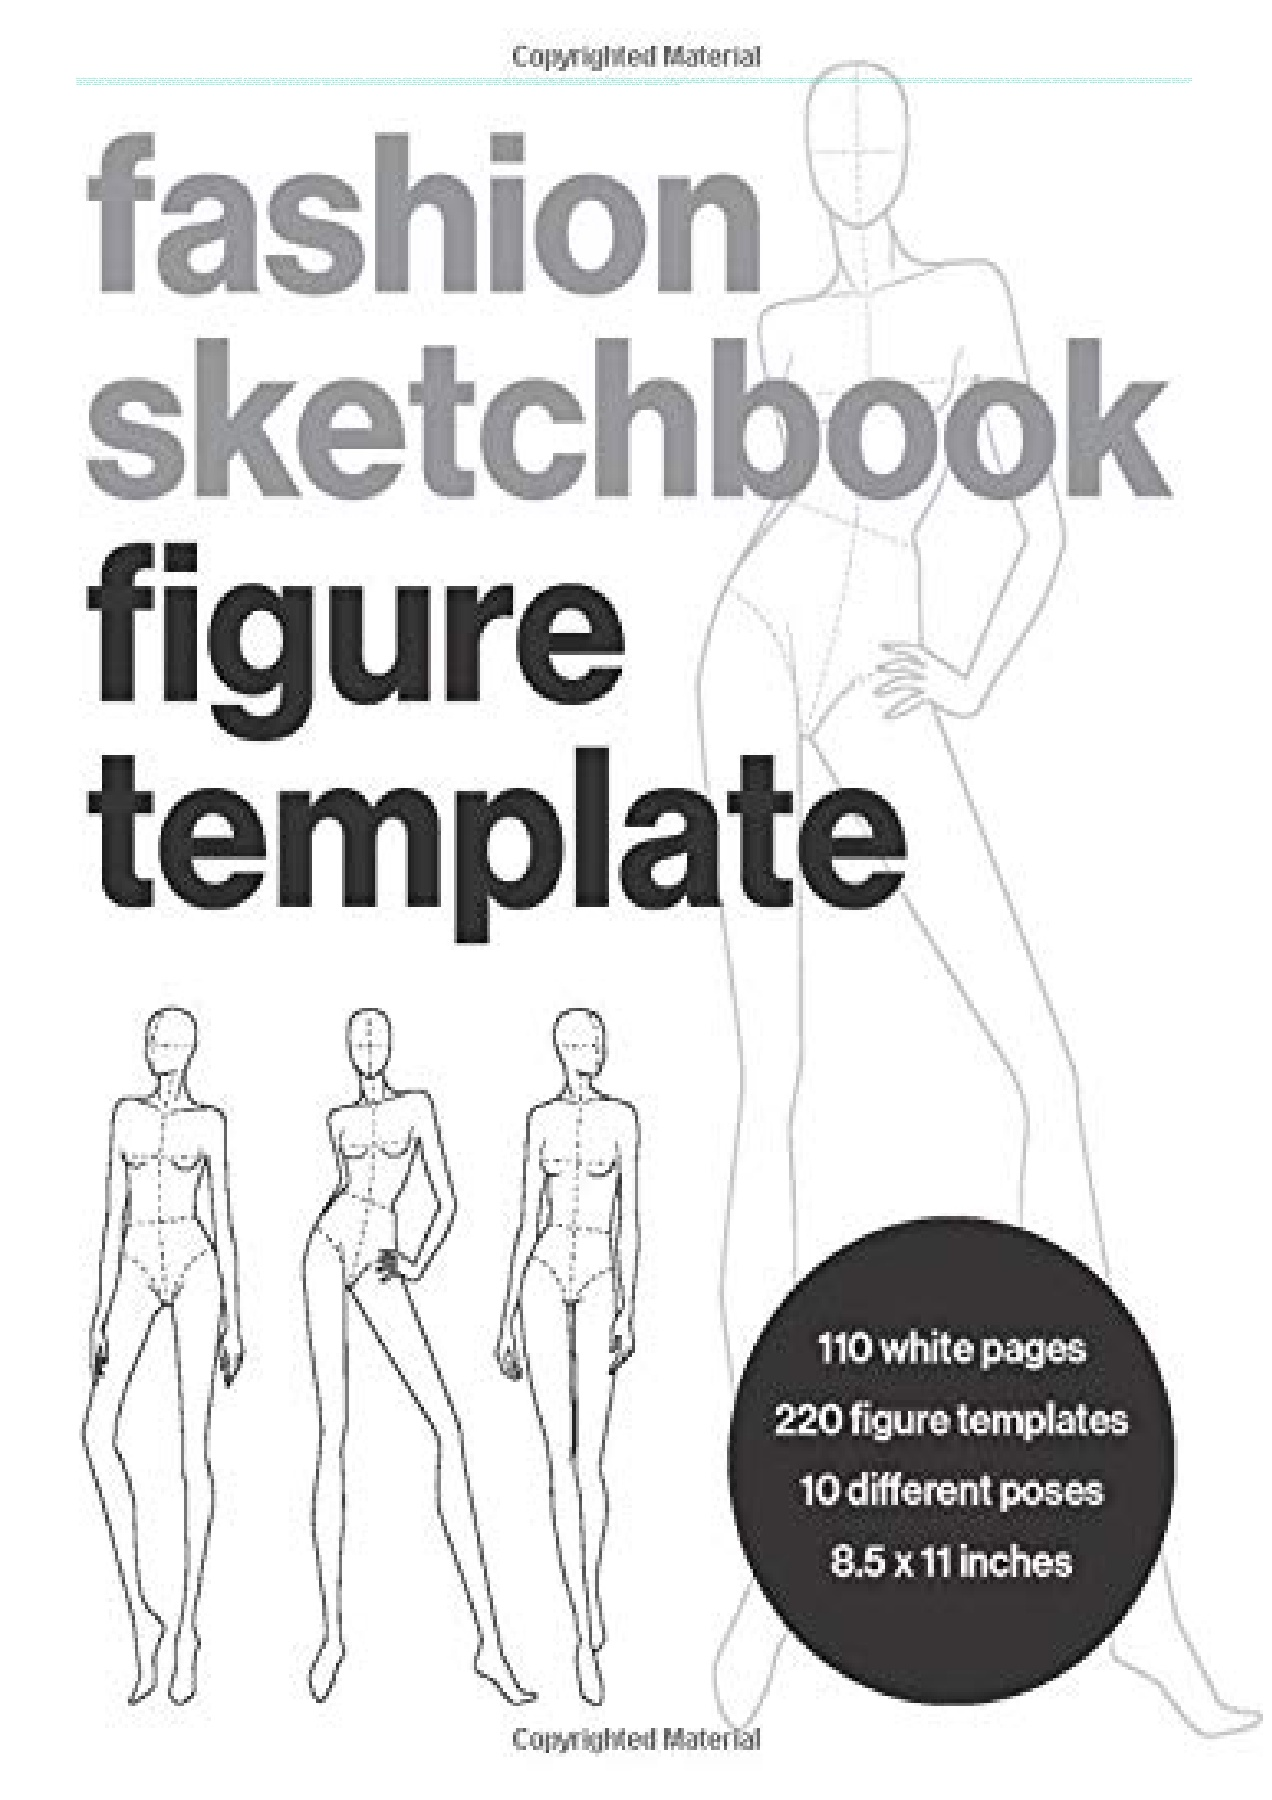 E Book Pdf Fashion Sketchbook Figure Template This Fashion Illustration Sketchbook Contains 220 Female Fashion Figure Templates Makes An Ideal Fashion Designed Fashion Croquis Fashion Templates Free Acces Pages 1 3 Text Version Anyflip